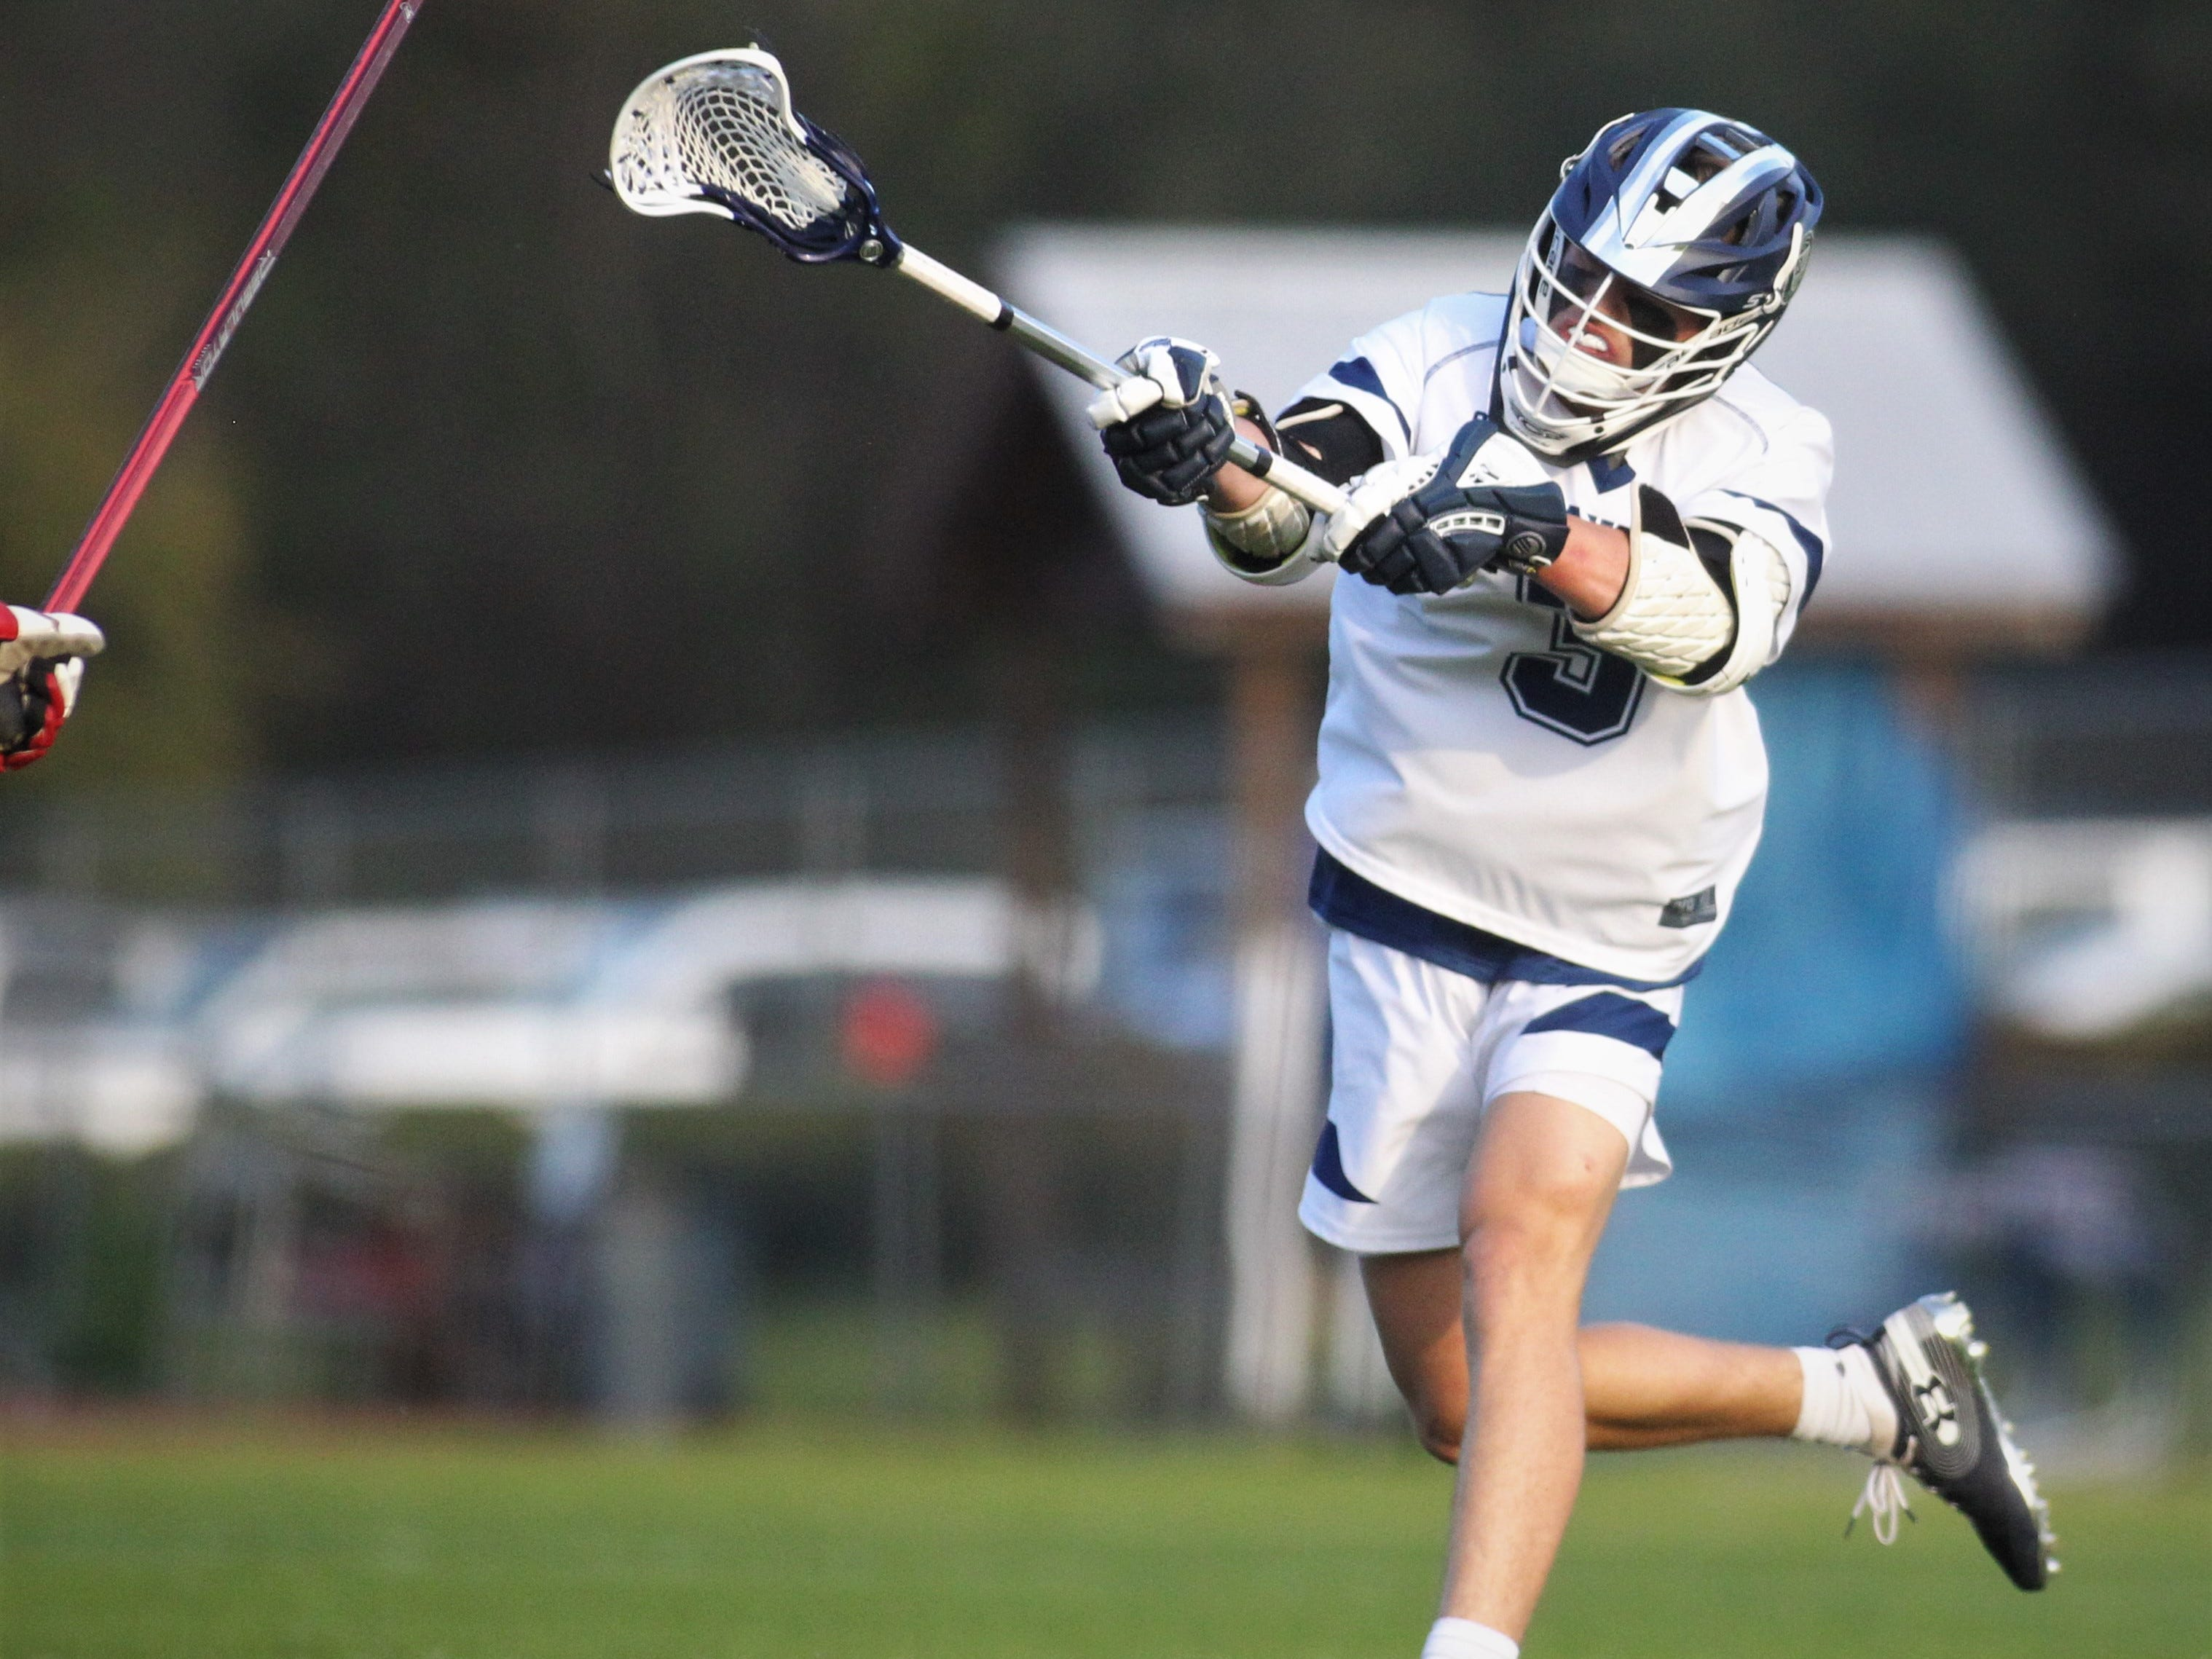 Maclay freshman Carson Rowe takes a shot on goal as the Marauders beat Leon 15-5 on their annual Military Appreciation Night on March 12, 2019.